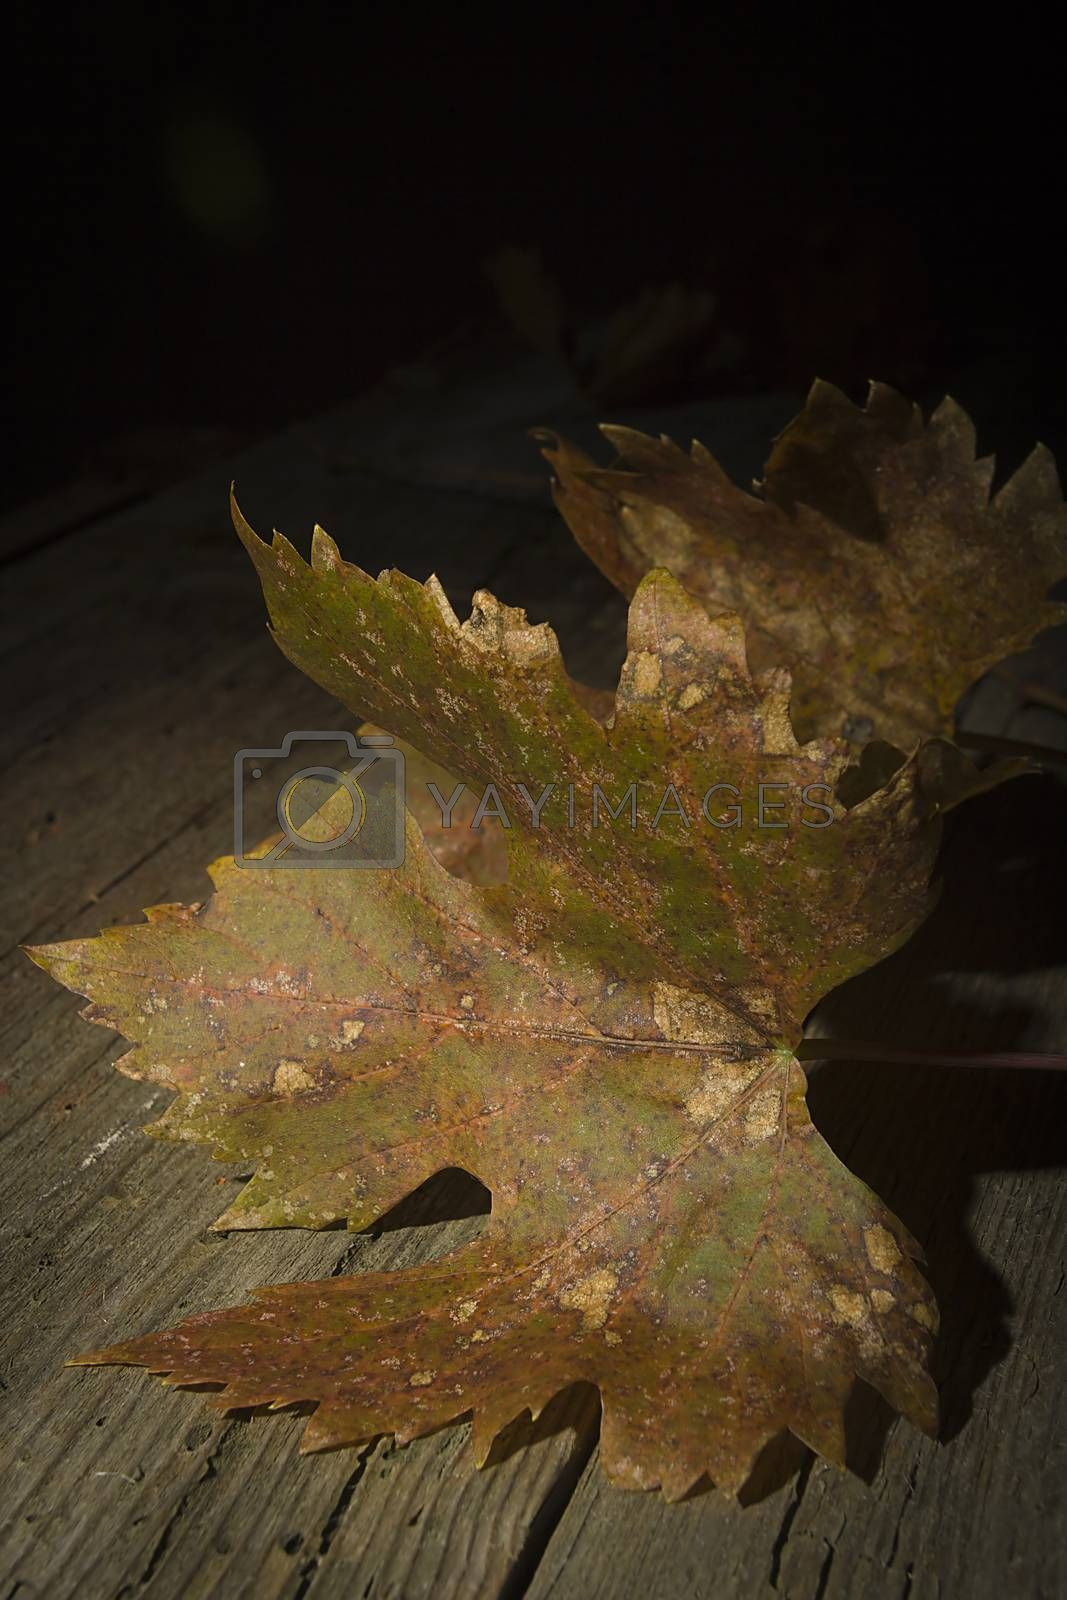 Yellowed withered grape leaves on an old wooden table